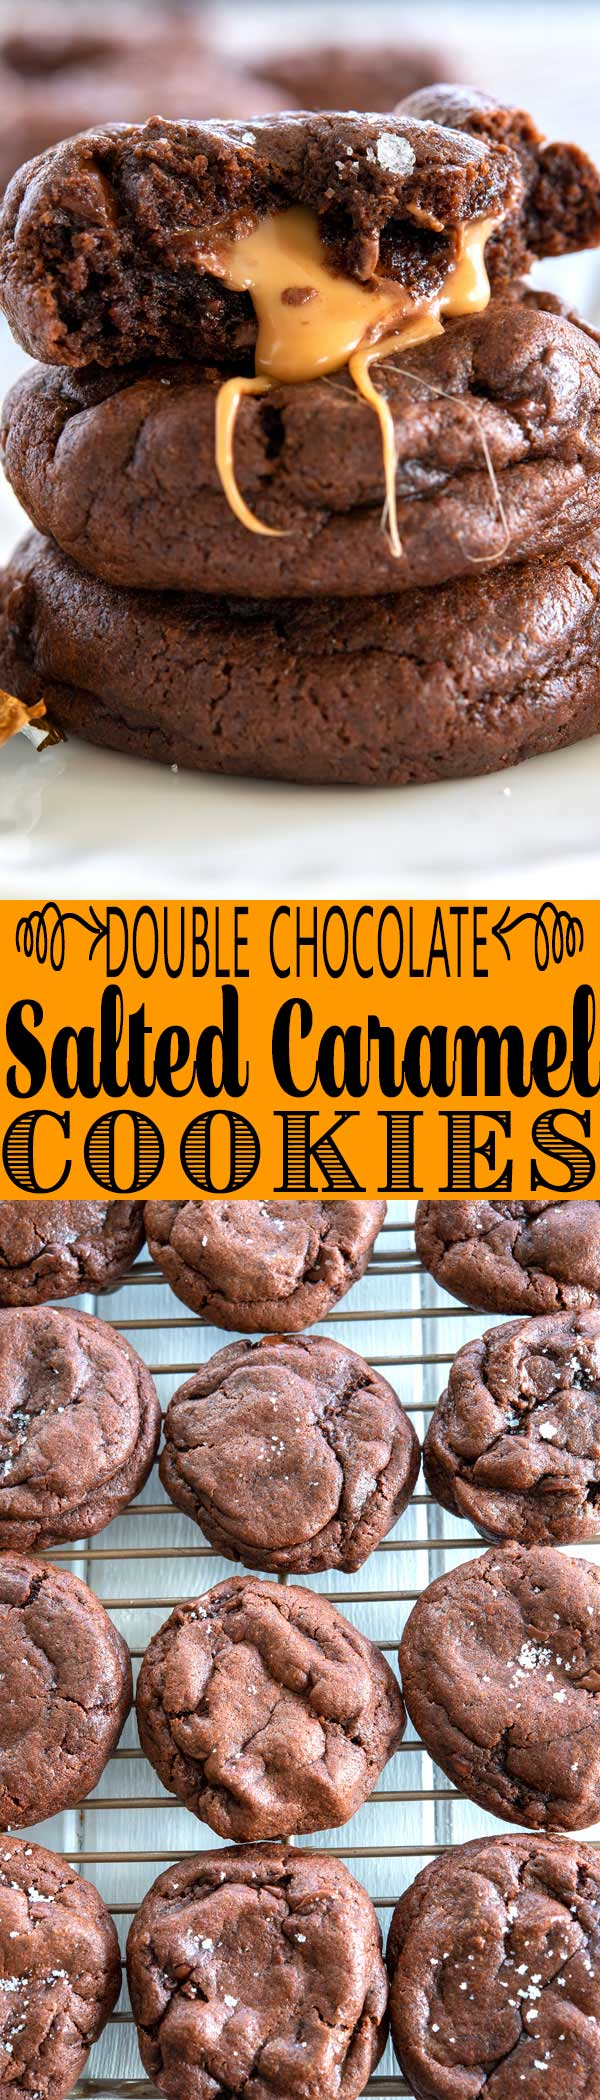 Double Chocolate Salted Caramel Cookies stuffed with Rolo candy! Sooo soft and chewy! #christmas #christmascookies #dessert #dessertideas